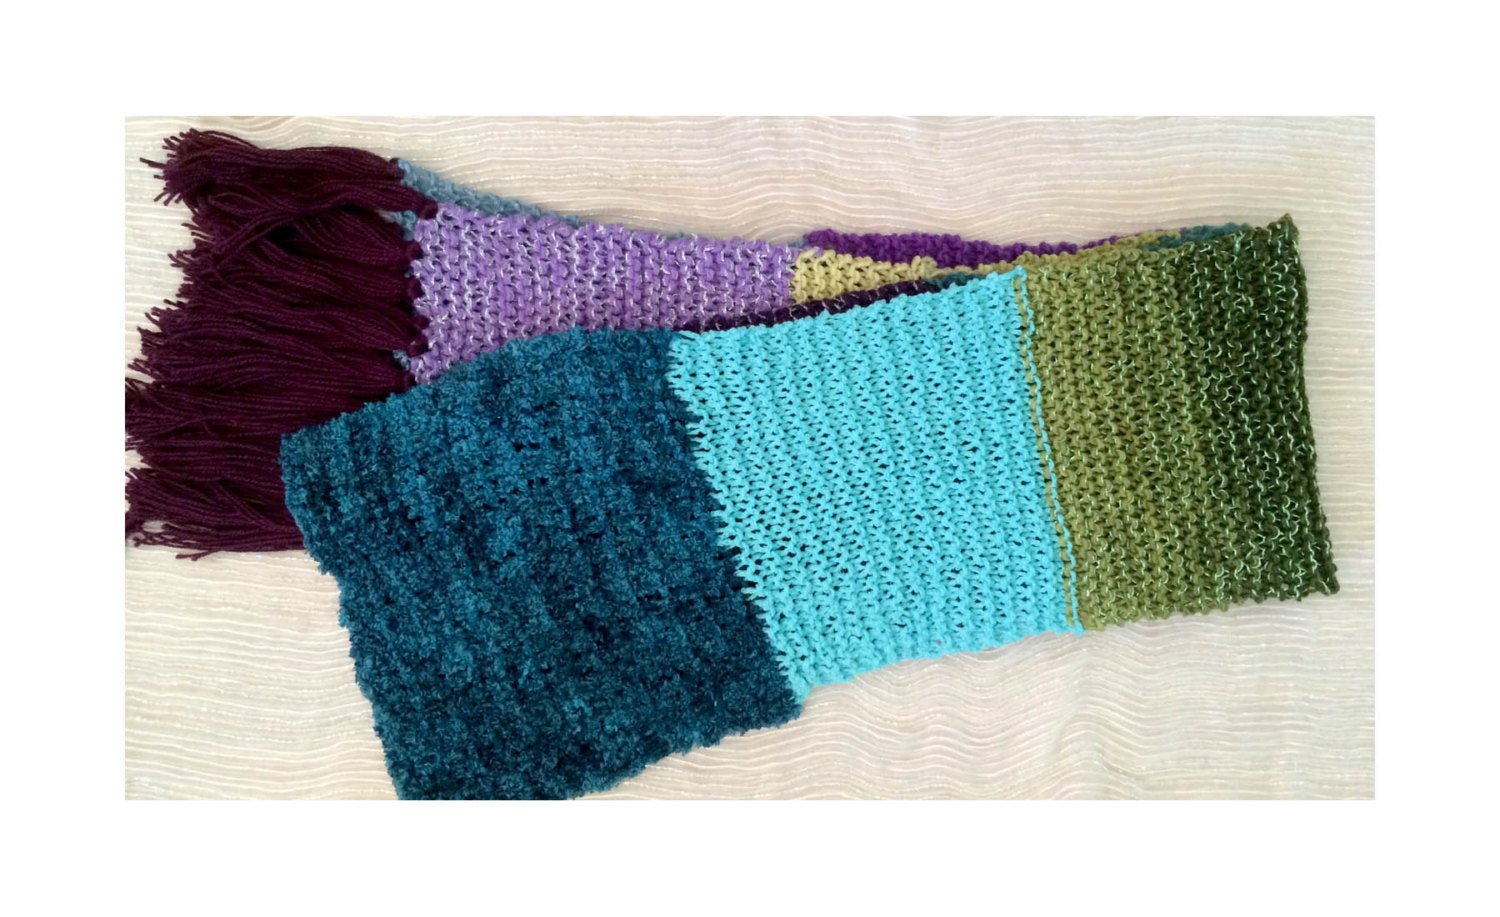 Extra-Long, Color-Blocked Scarf in Deep Jewel Tones